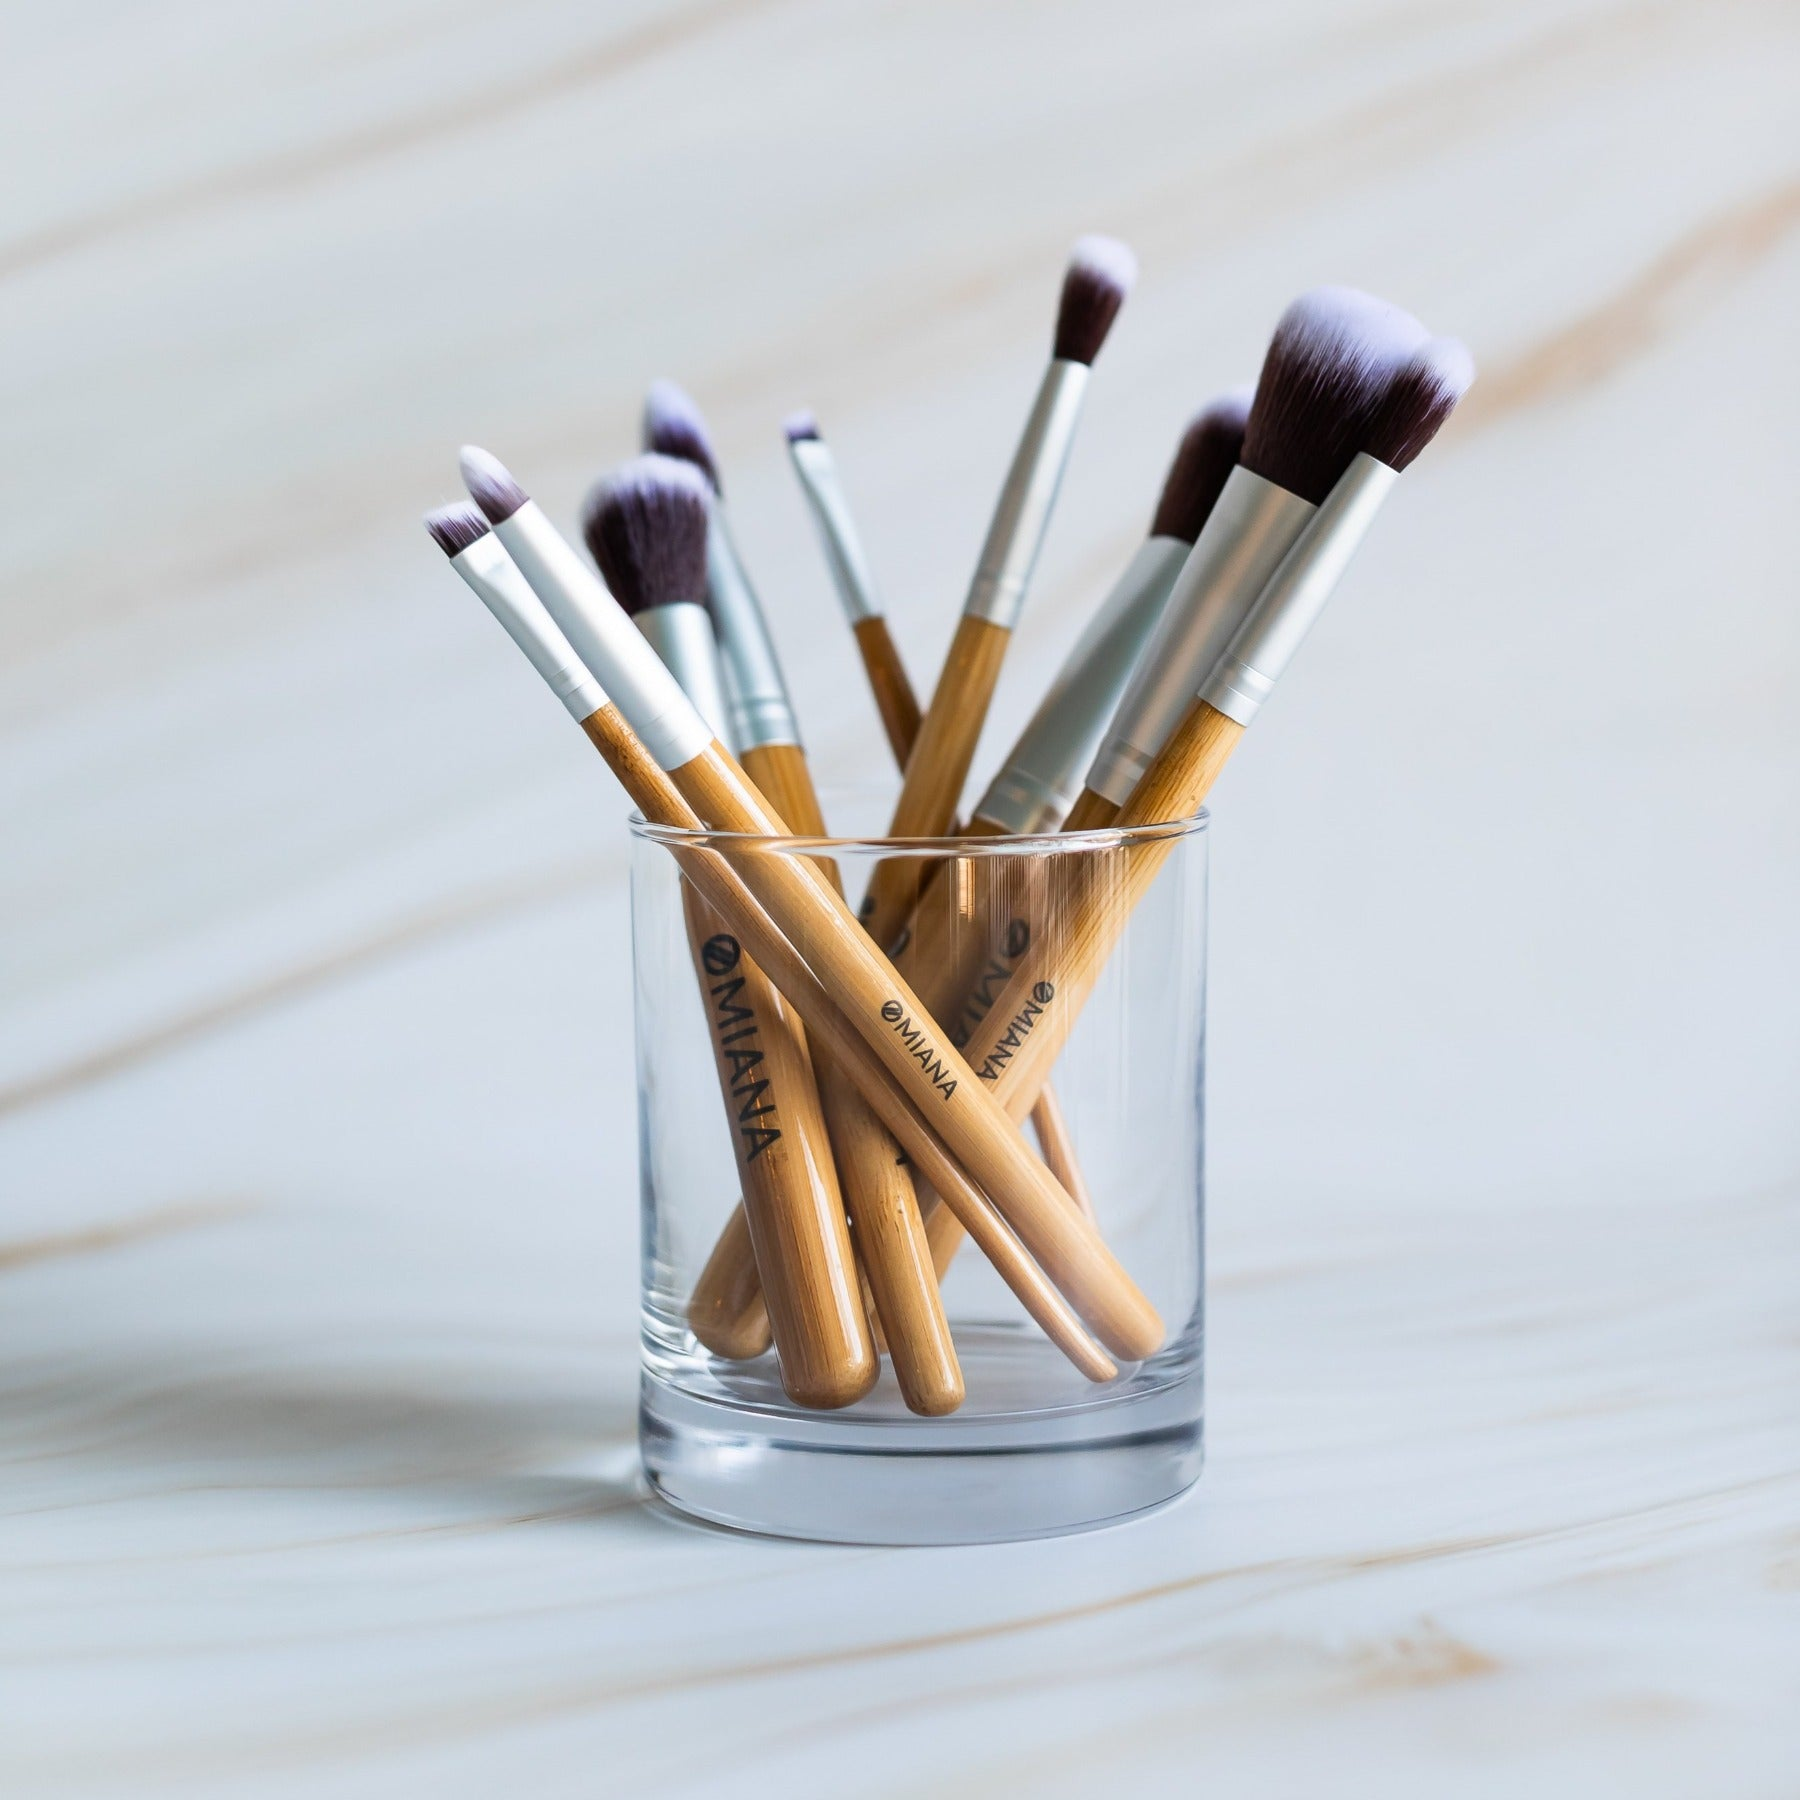 Brushes for Natural Makeup